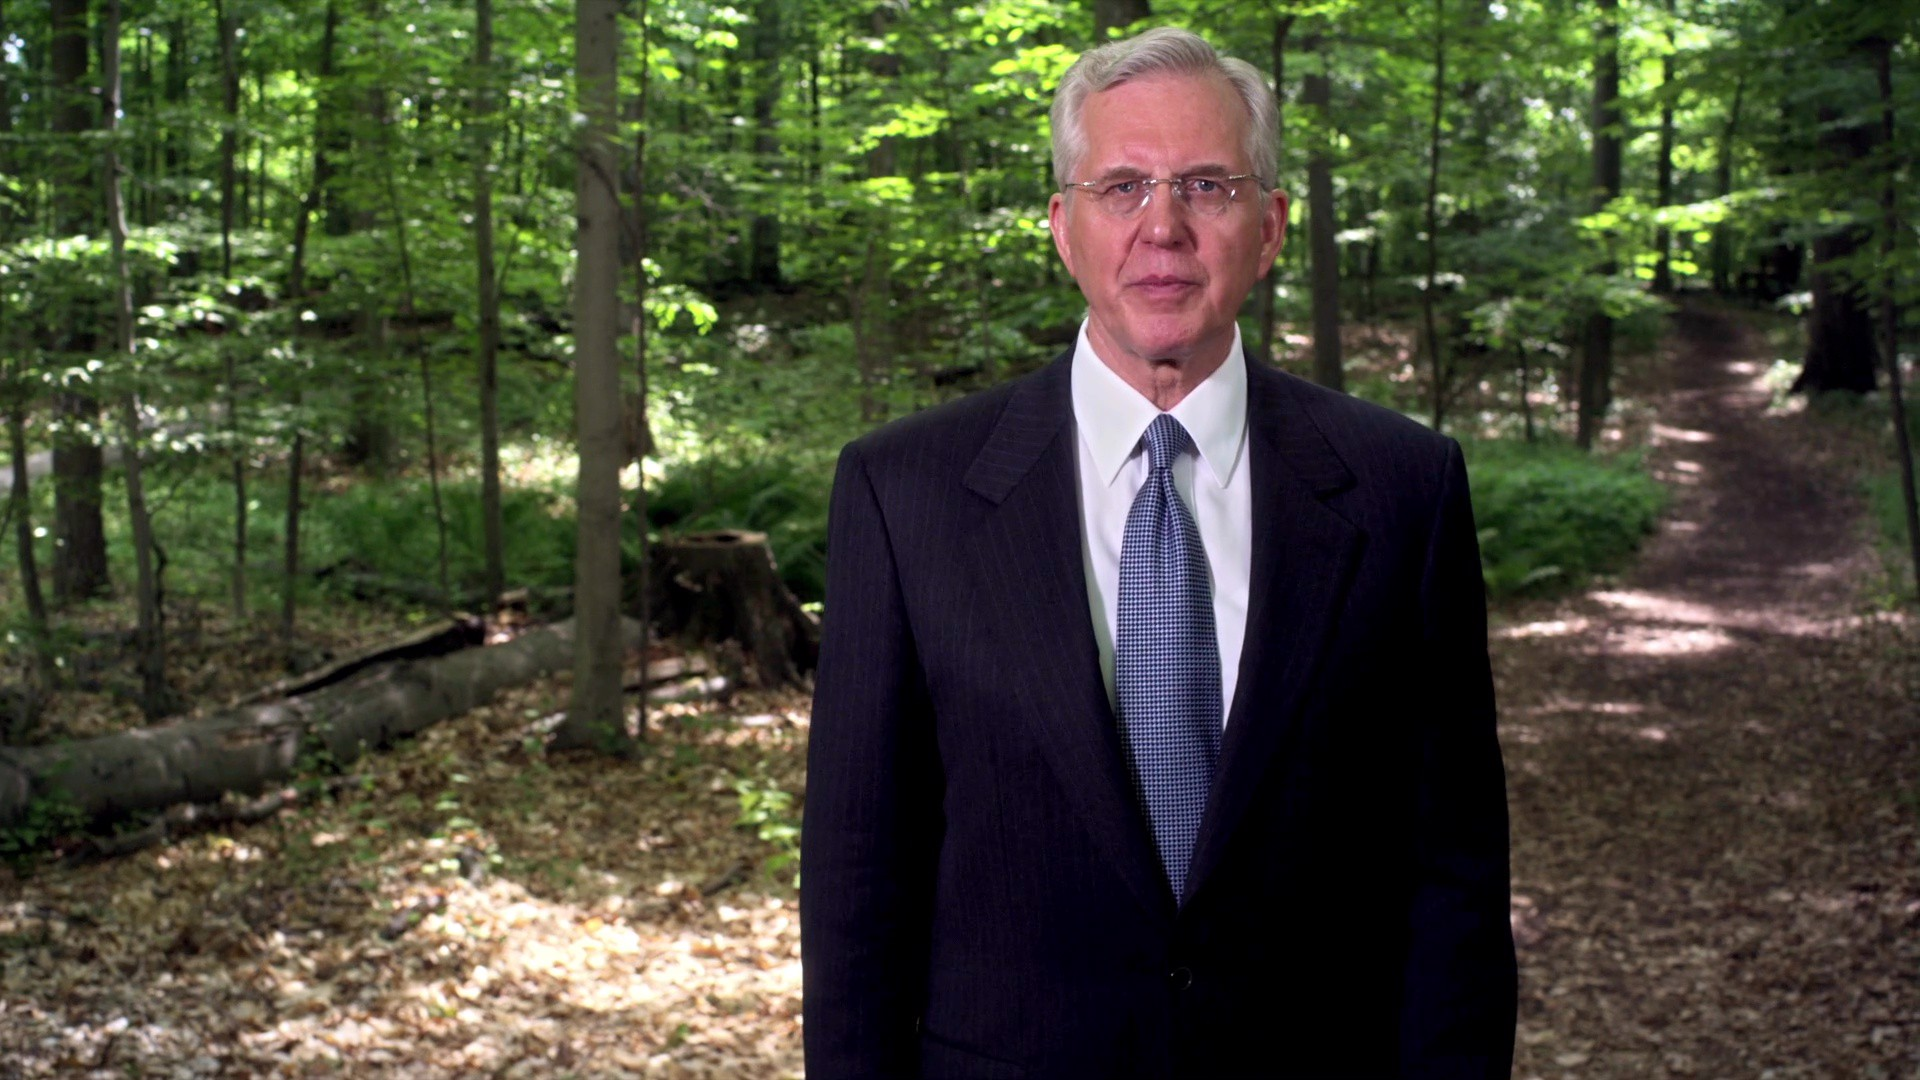 Elder D. Todd Christofferson bears his testimony that Joseph Smith saw God the Father and Jesus Christ in the Sacred Grove.